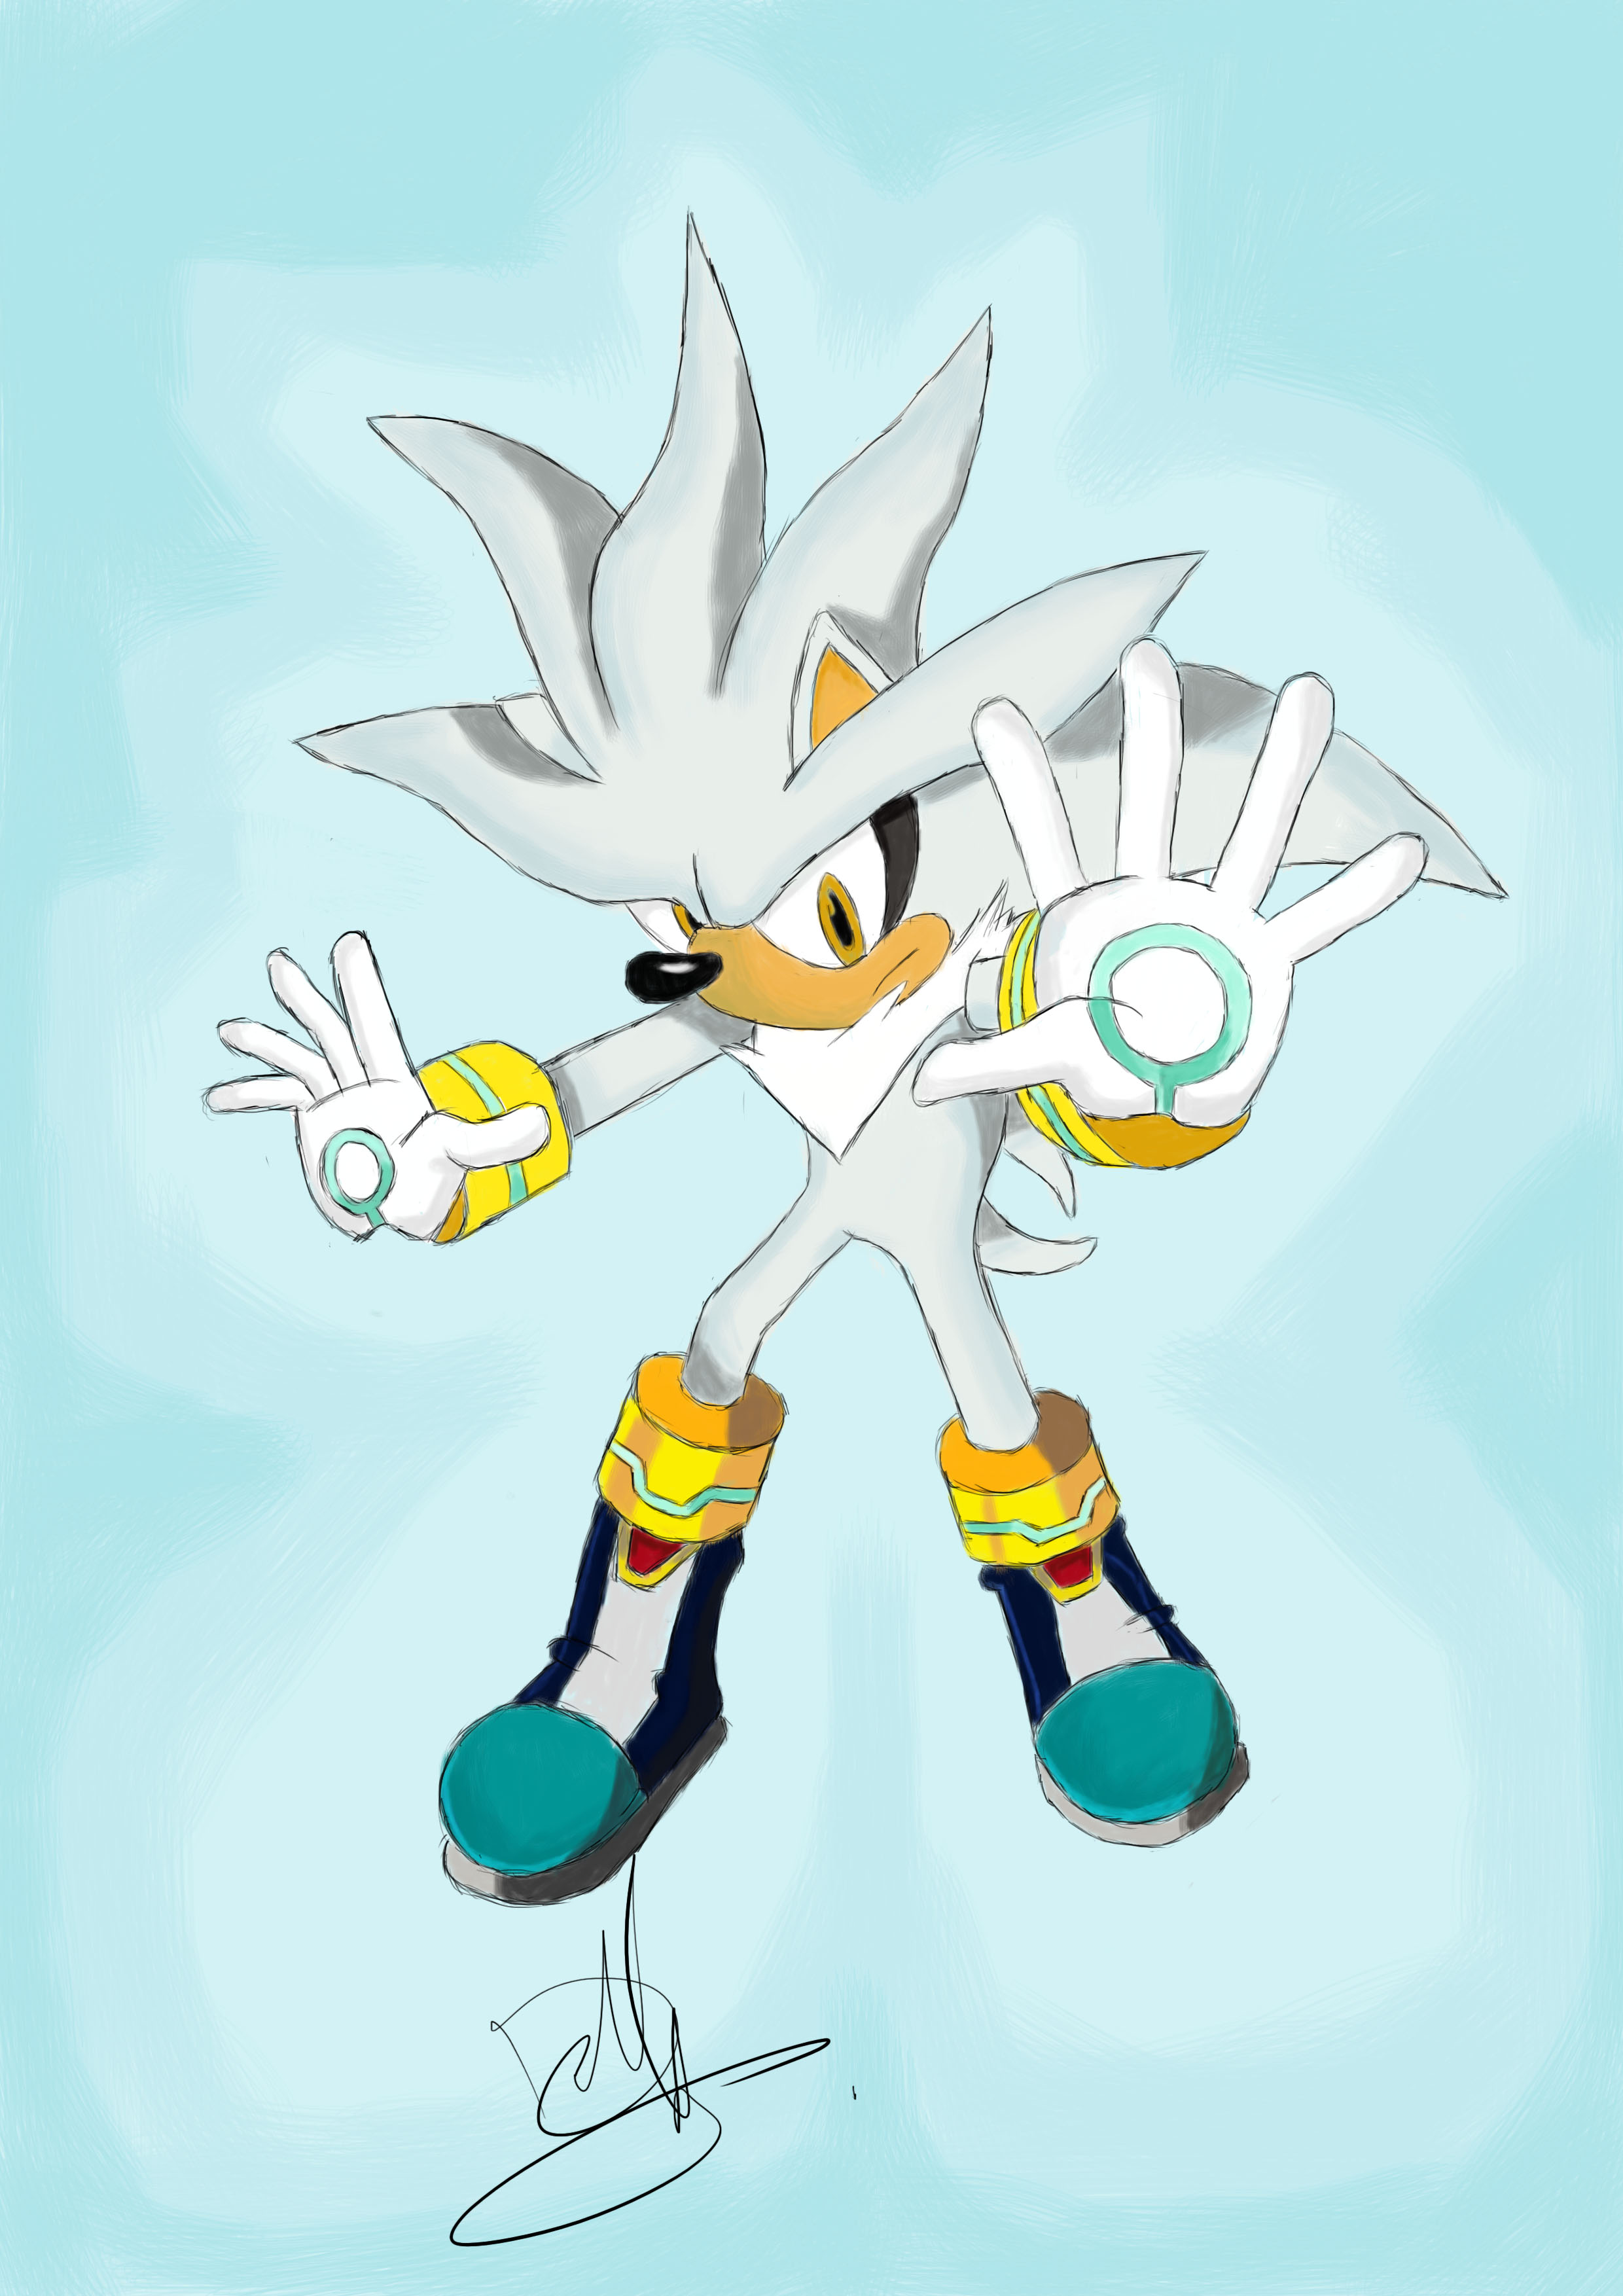 silver (sonic the hedgehog)